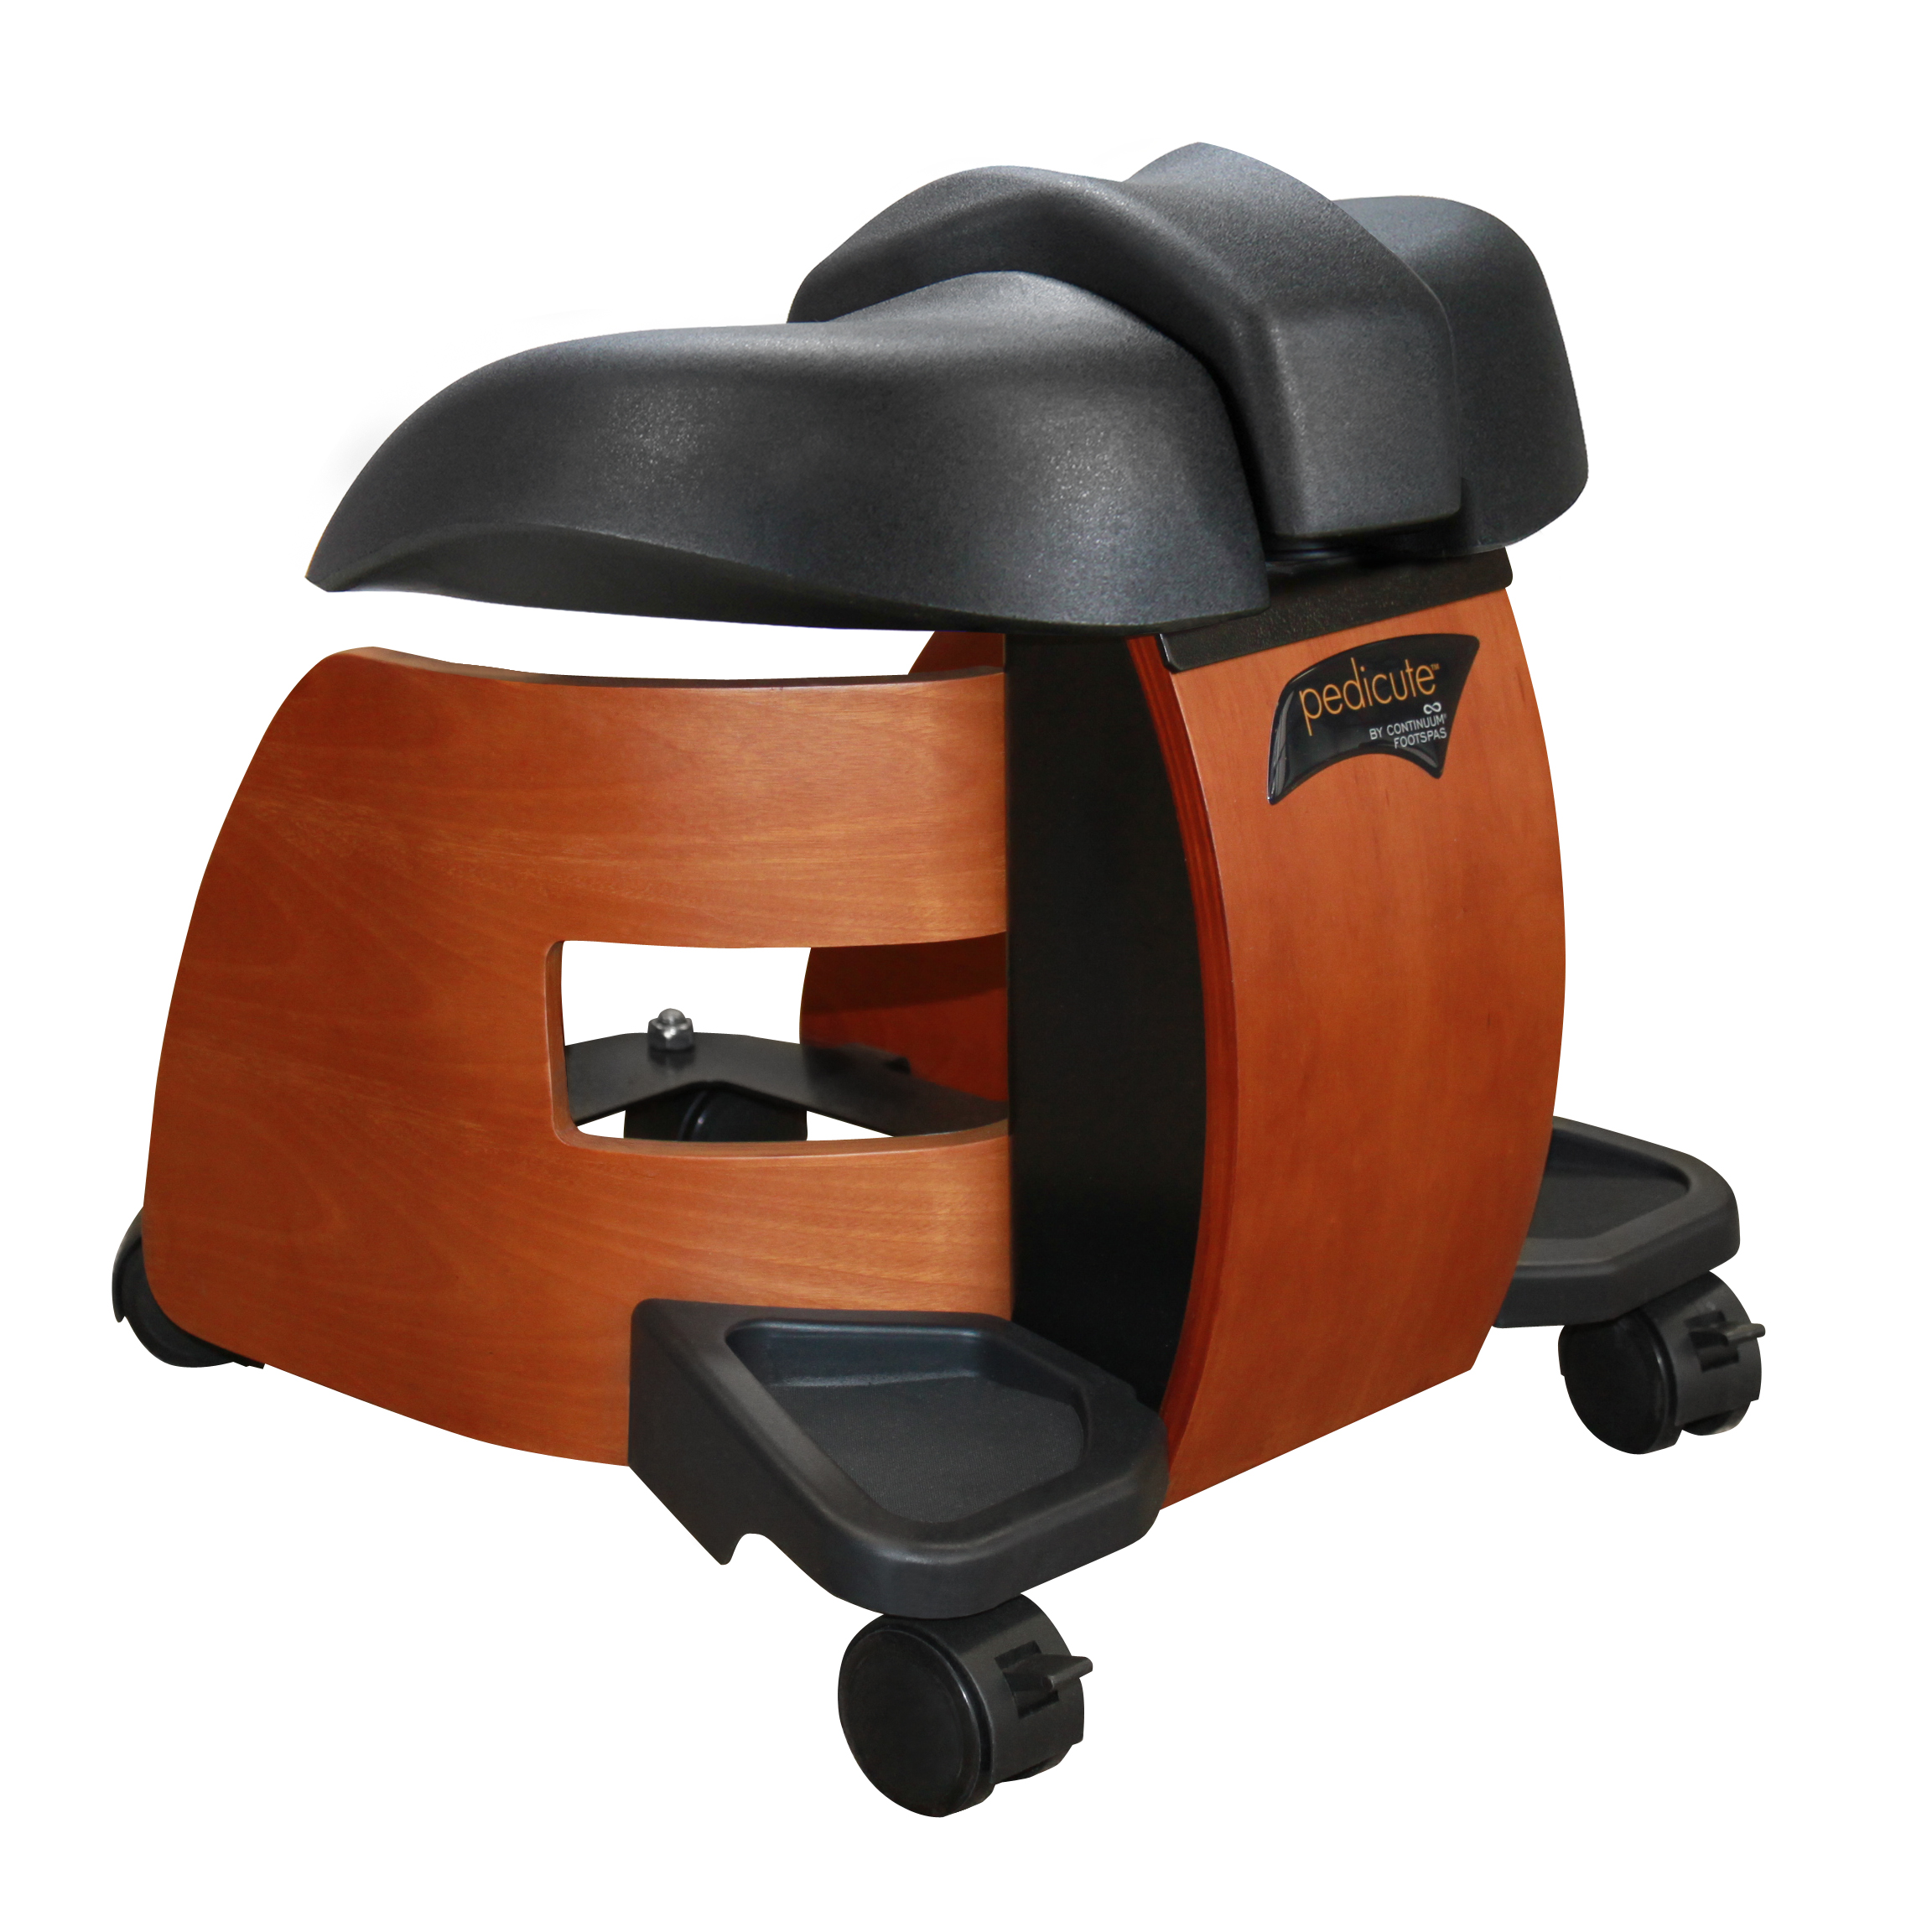 portable pedicure chairs wedding stage continuum pedicute spa exterior shell